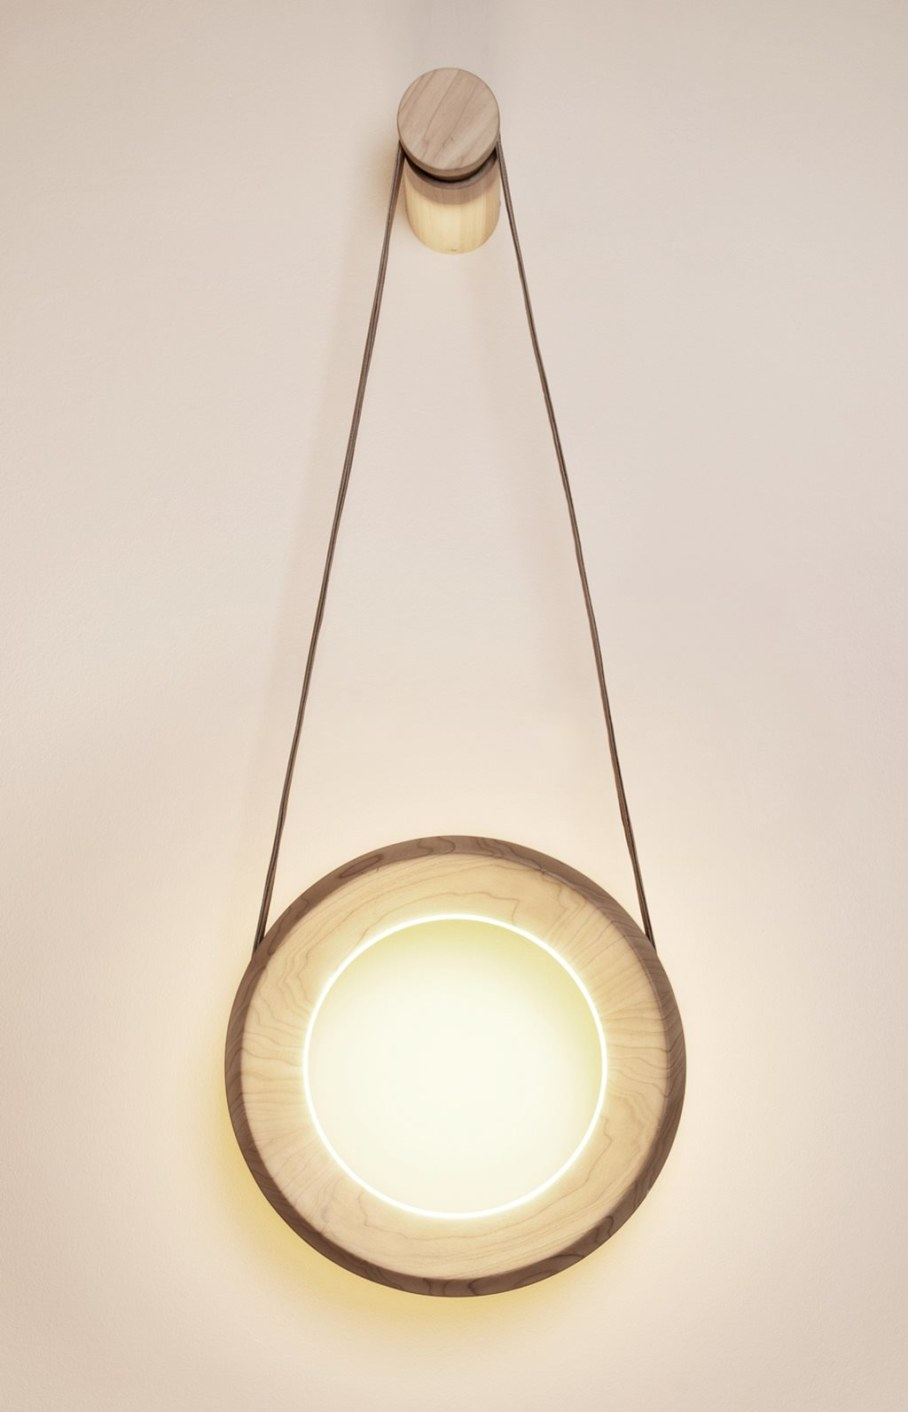 Halo Lamp - Interactive Light Fixture 1